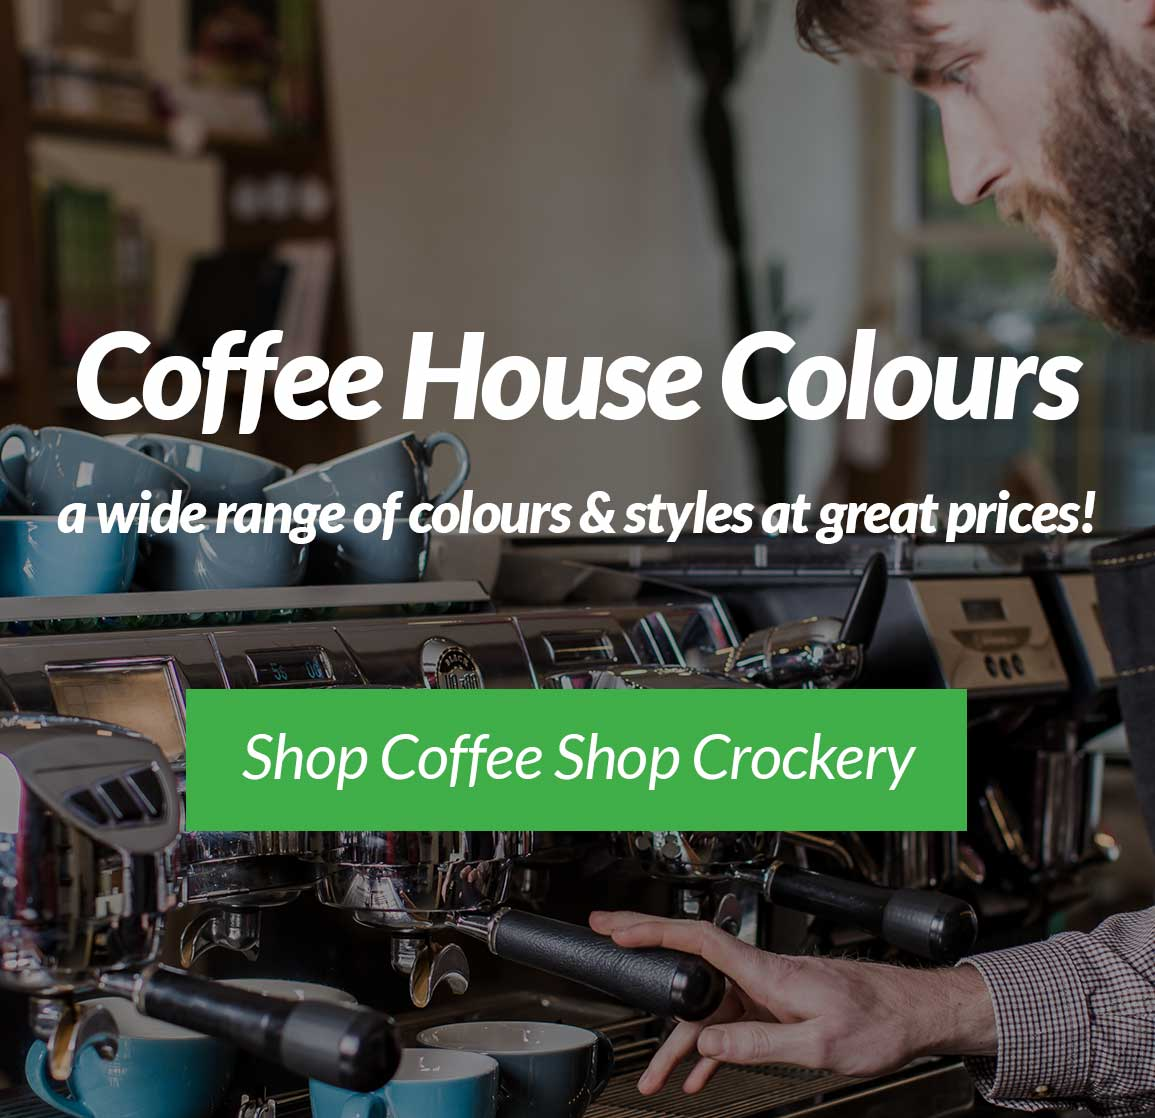 Coffee House Colours